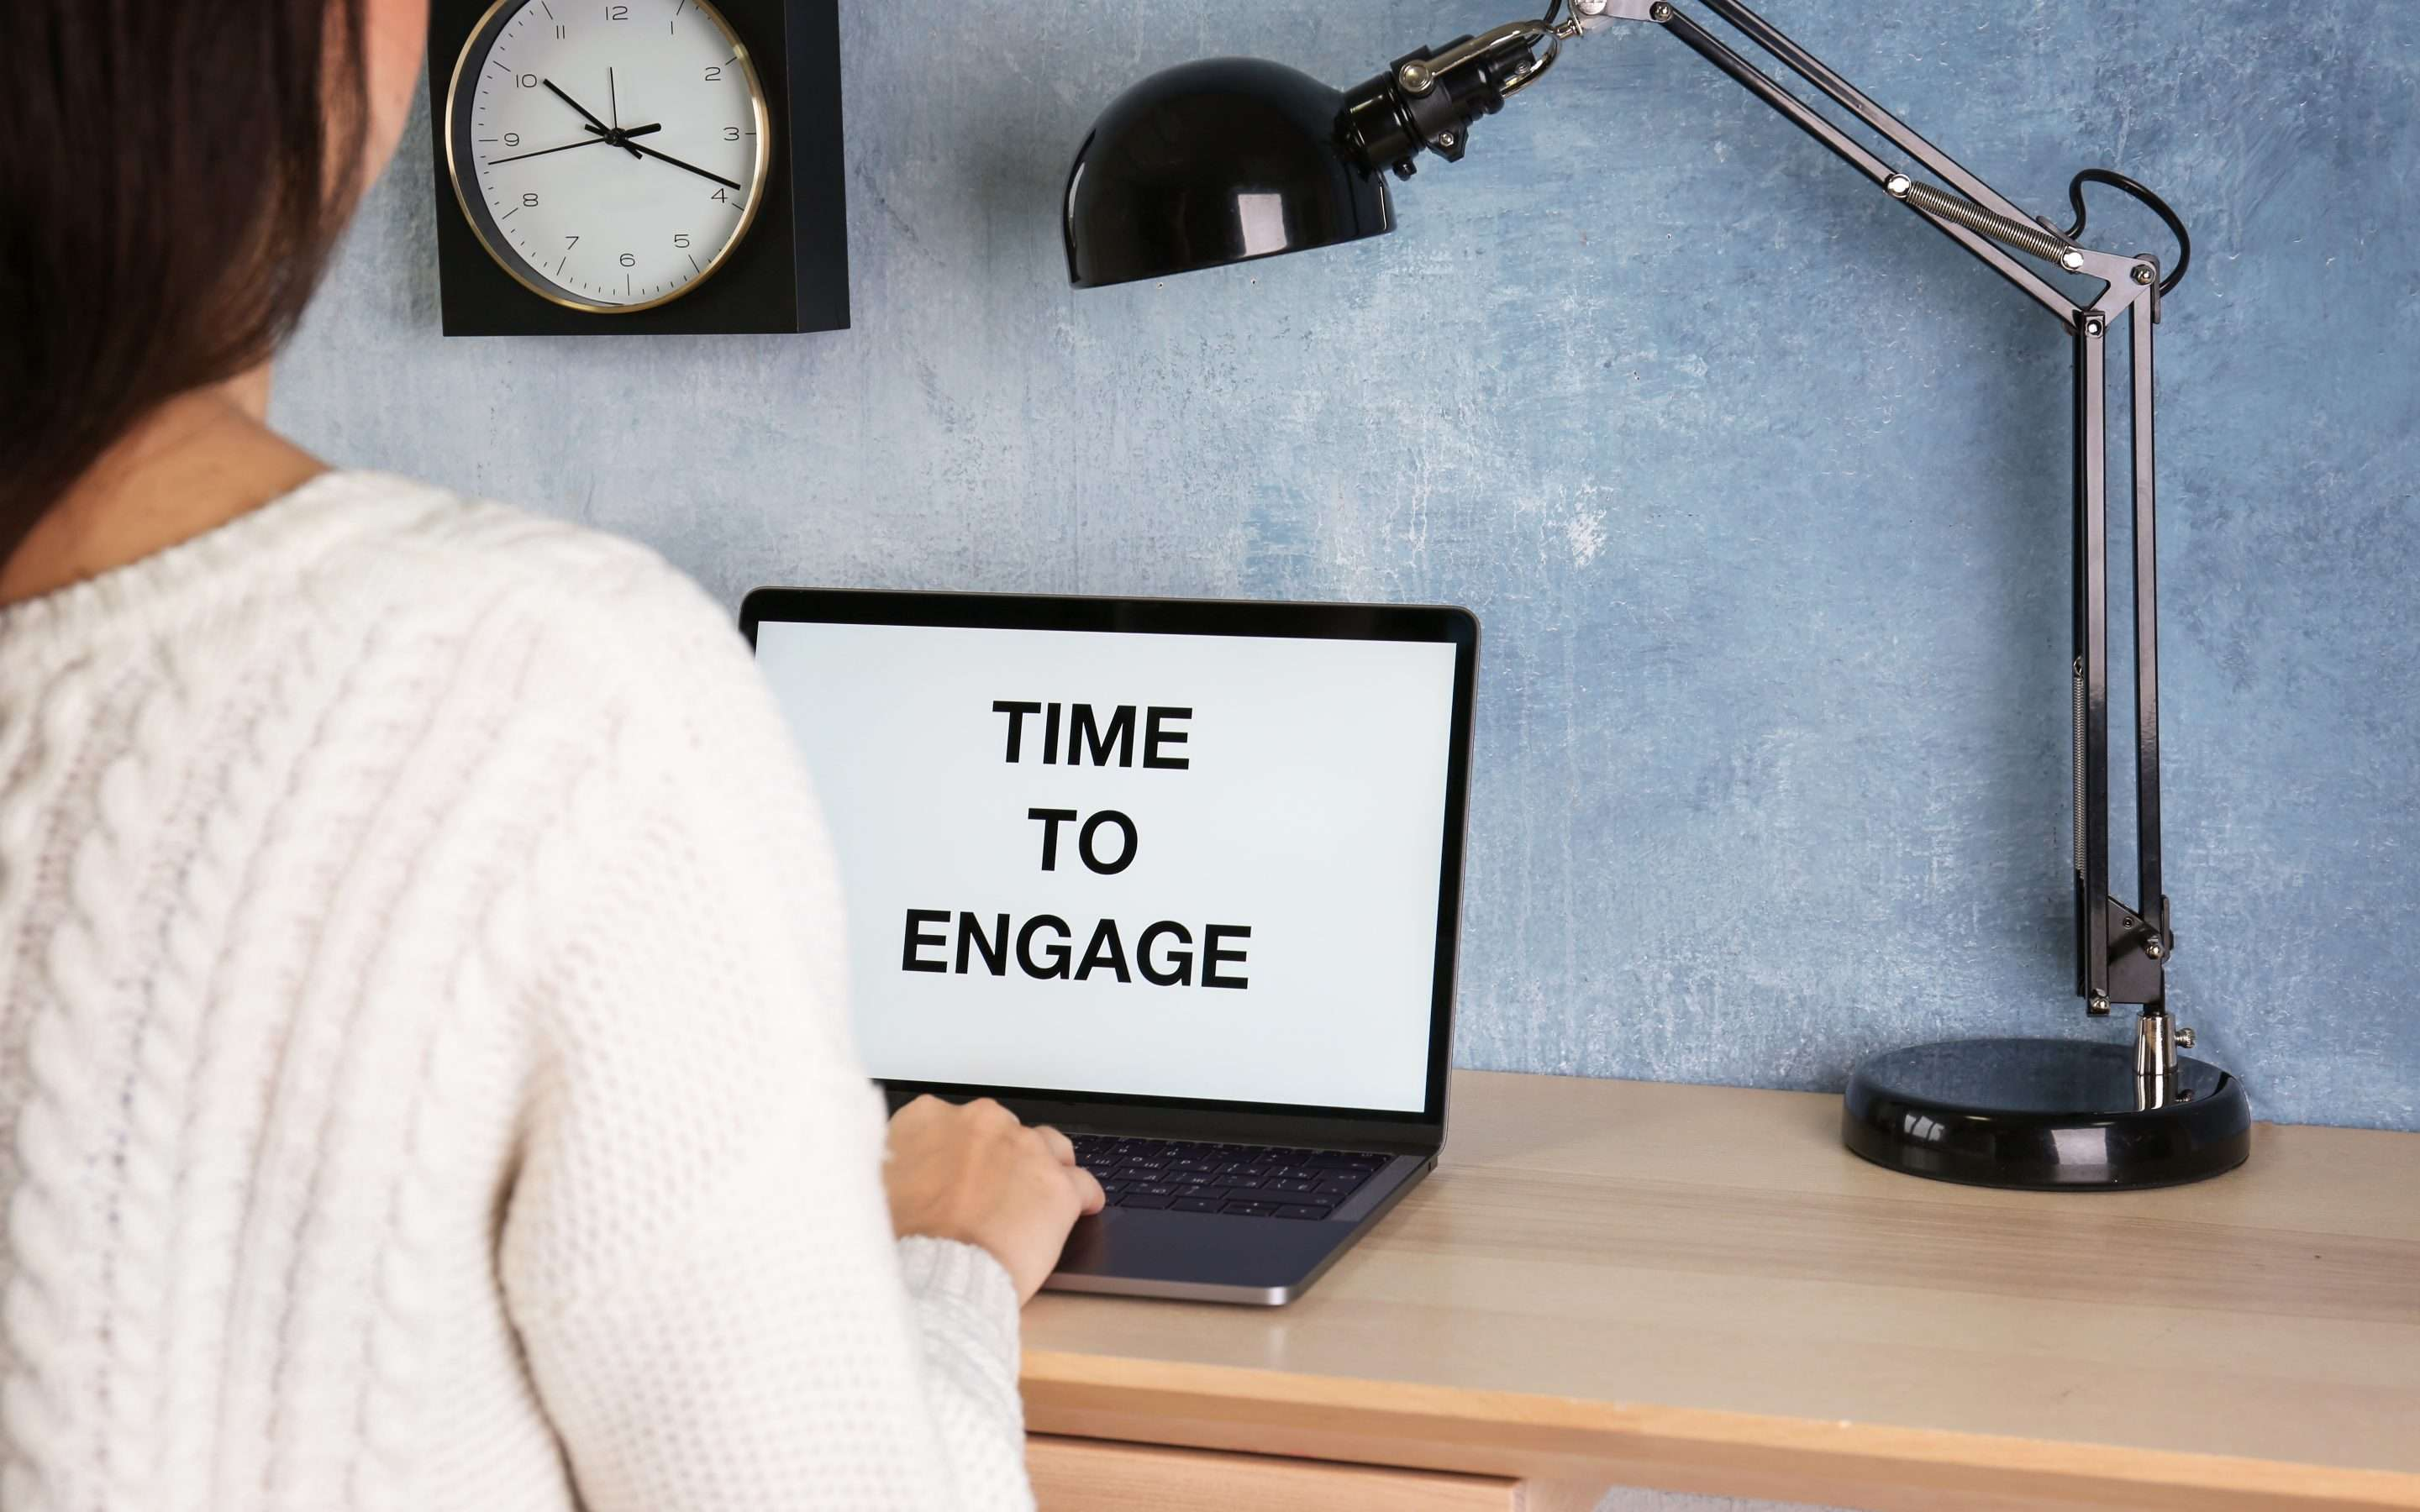 Learn how to increase your audience engagement